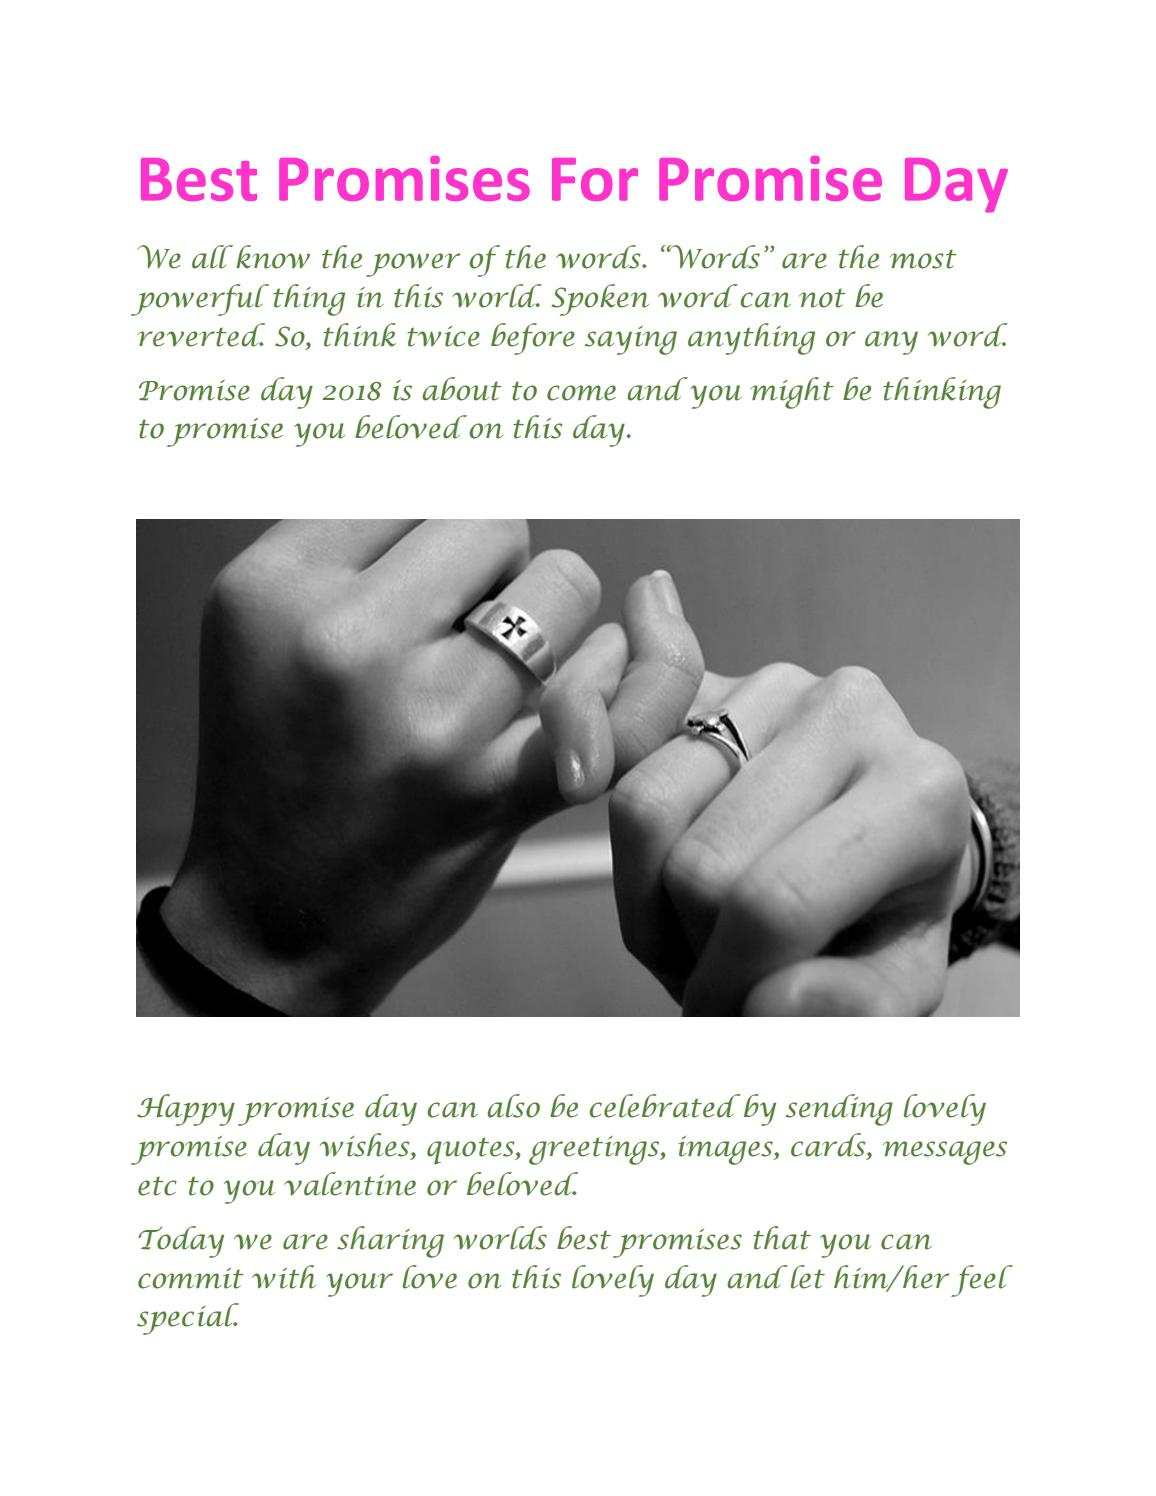 Best promises for promise day by Wishes Quotes - issuu